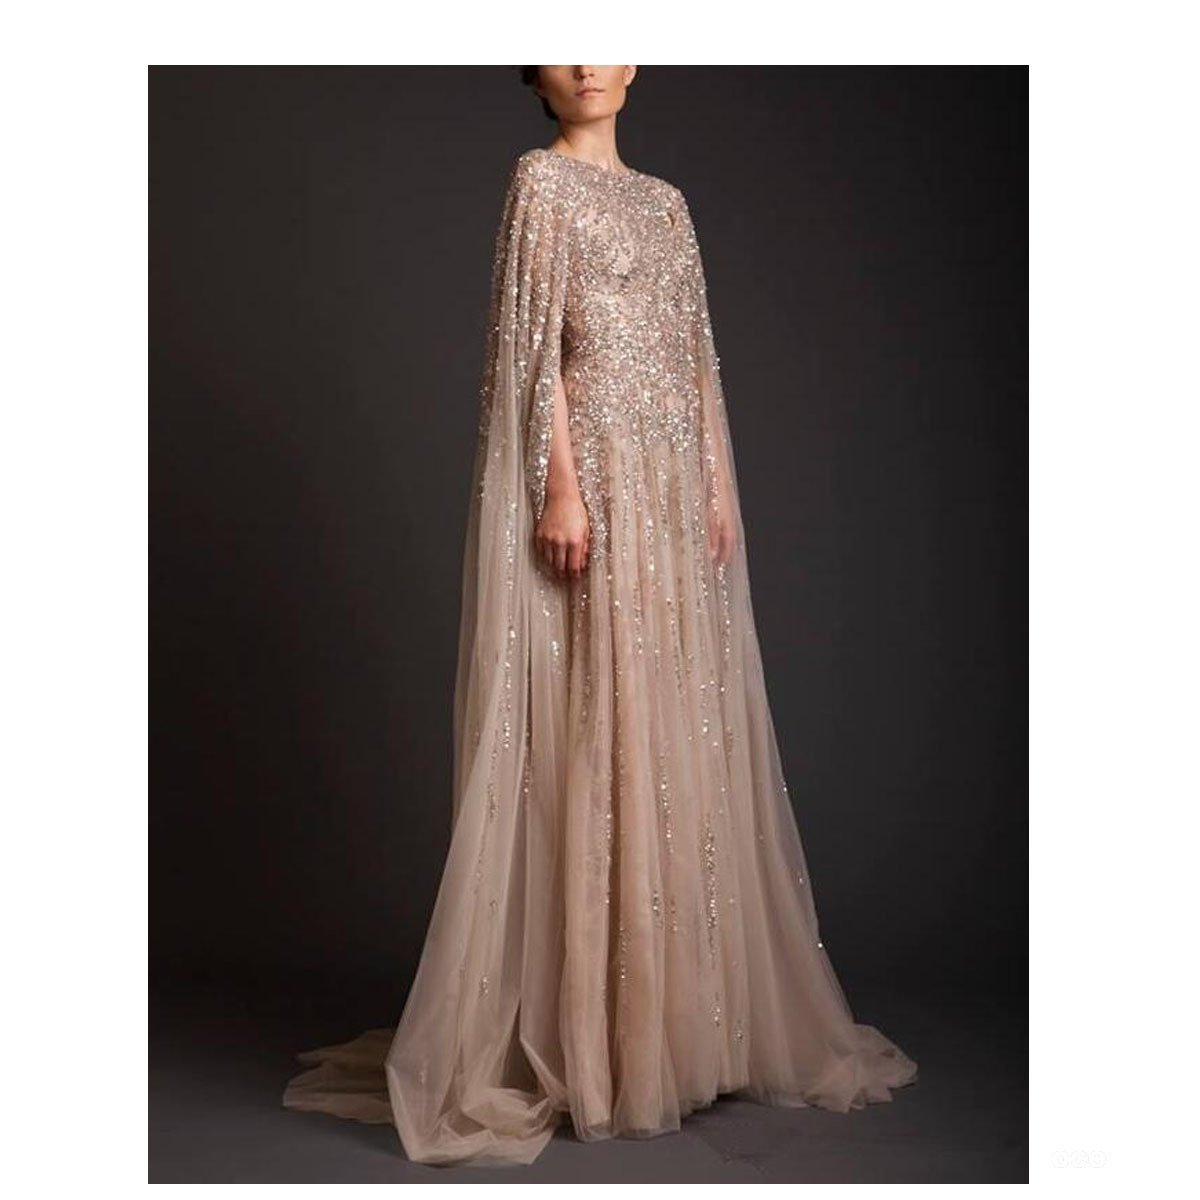 Fair Lady Prom Dresses Champagne Mother Of The Bride Evening Gowns